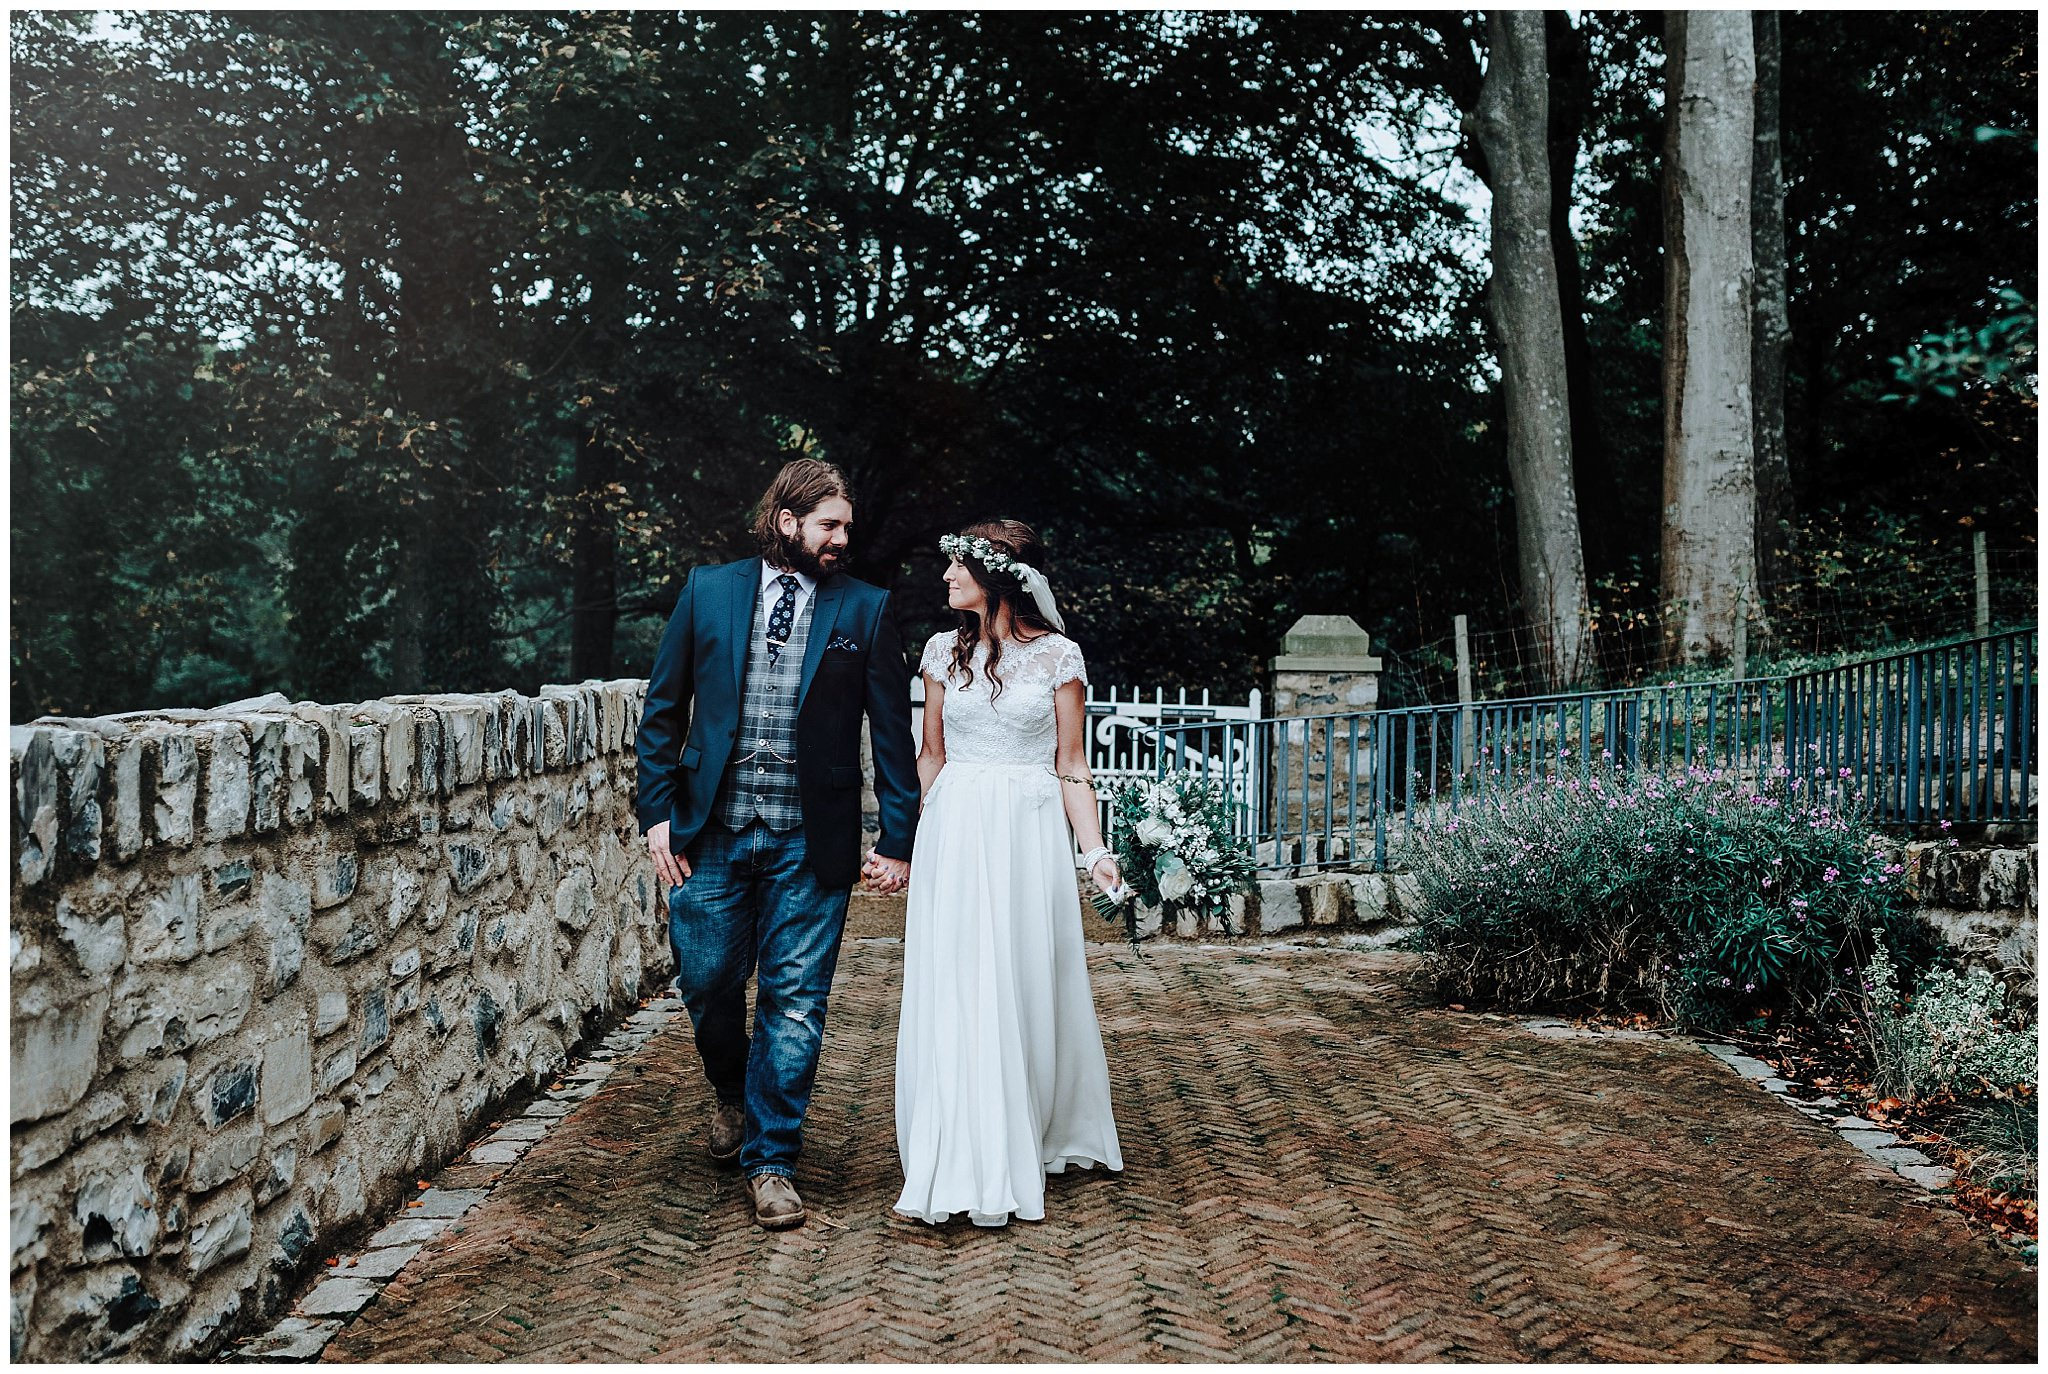 Bride and Groom walking hand in hand at Bodnant Welsh Food Centre